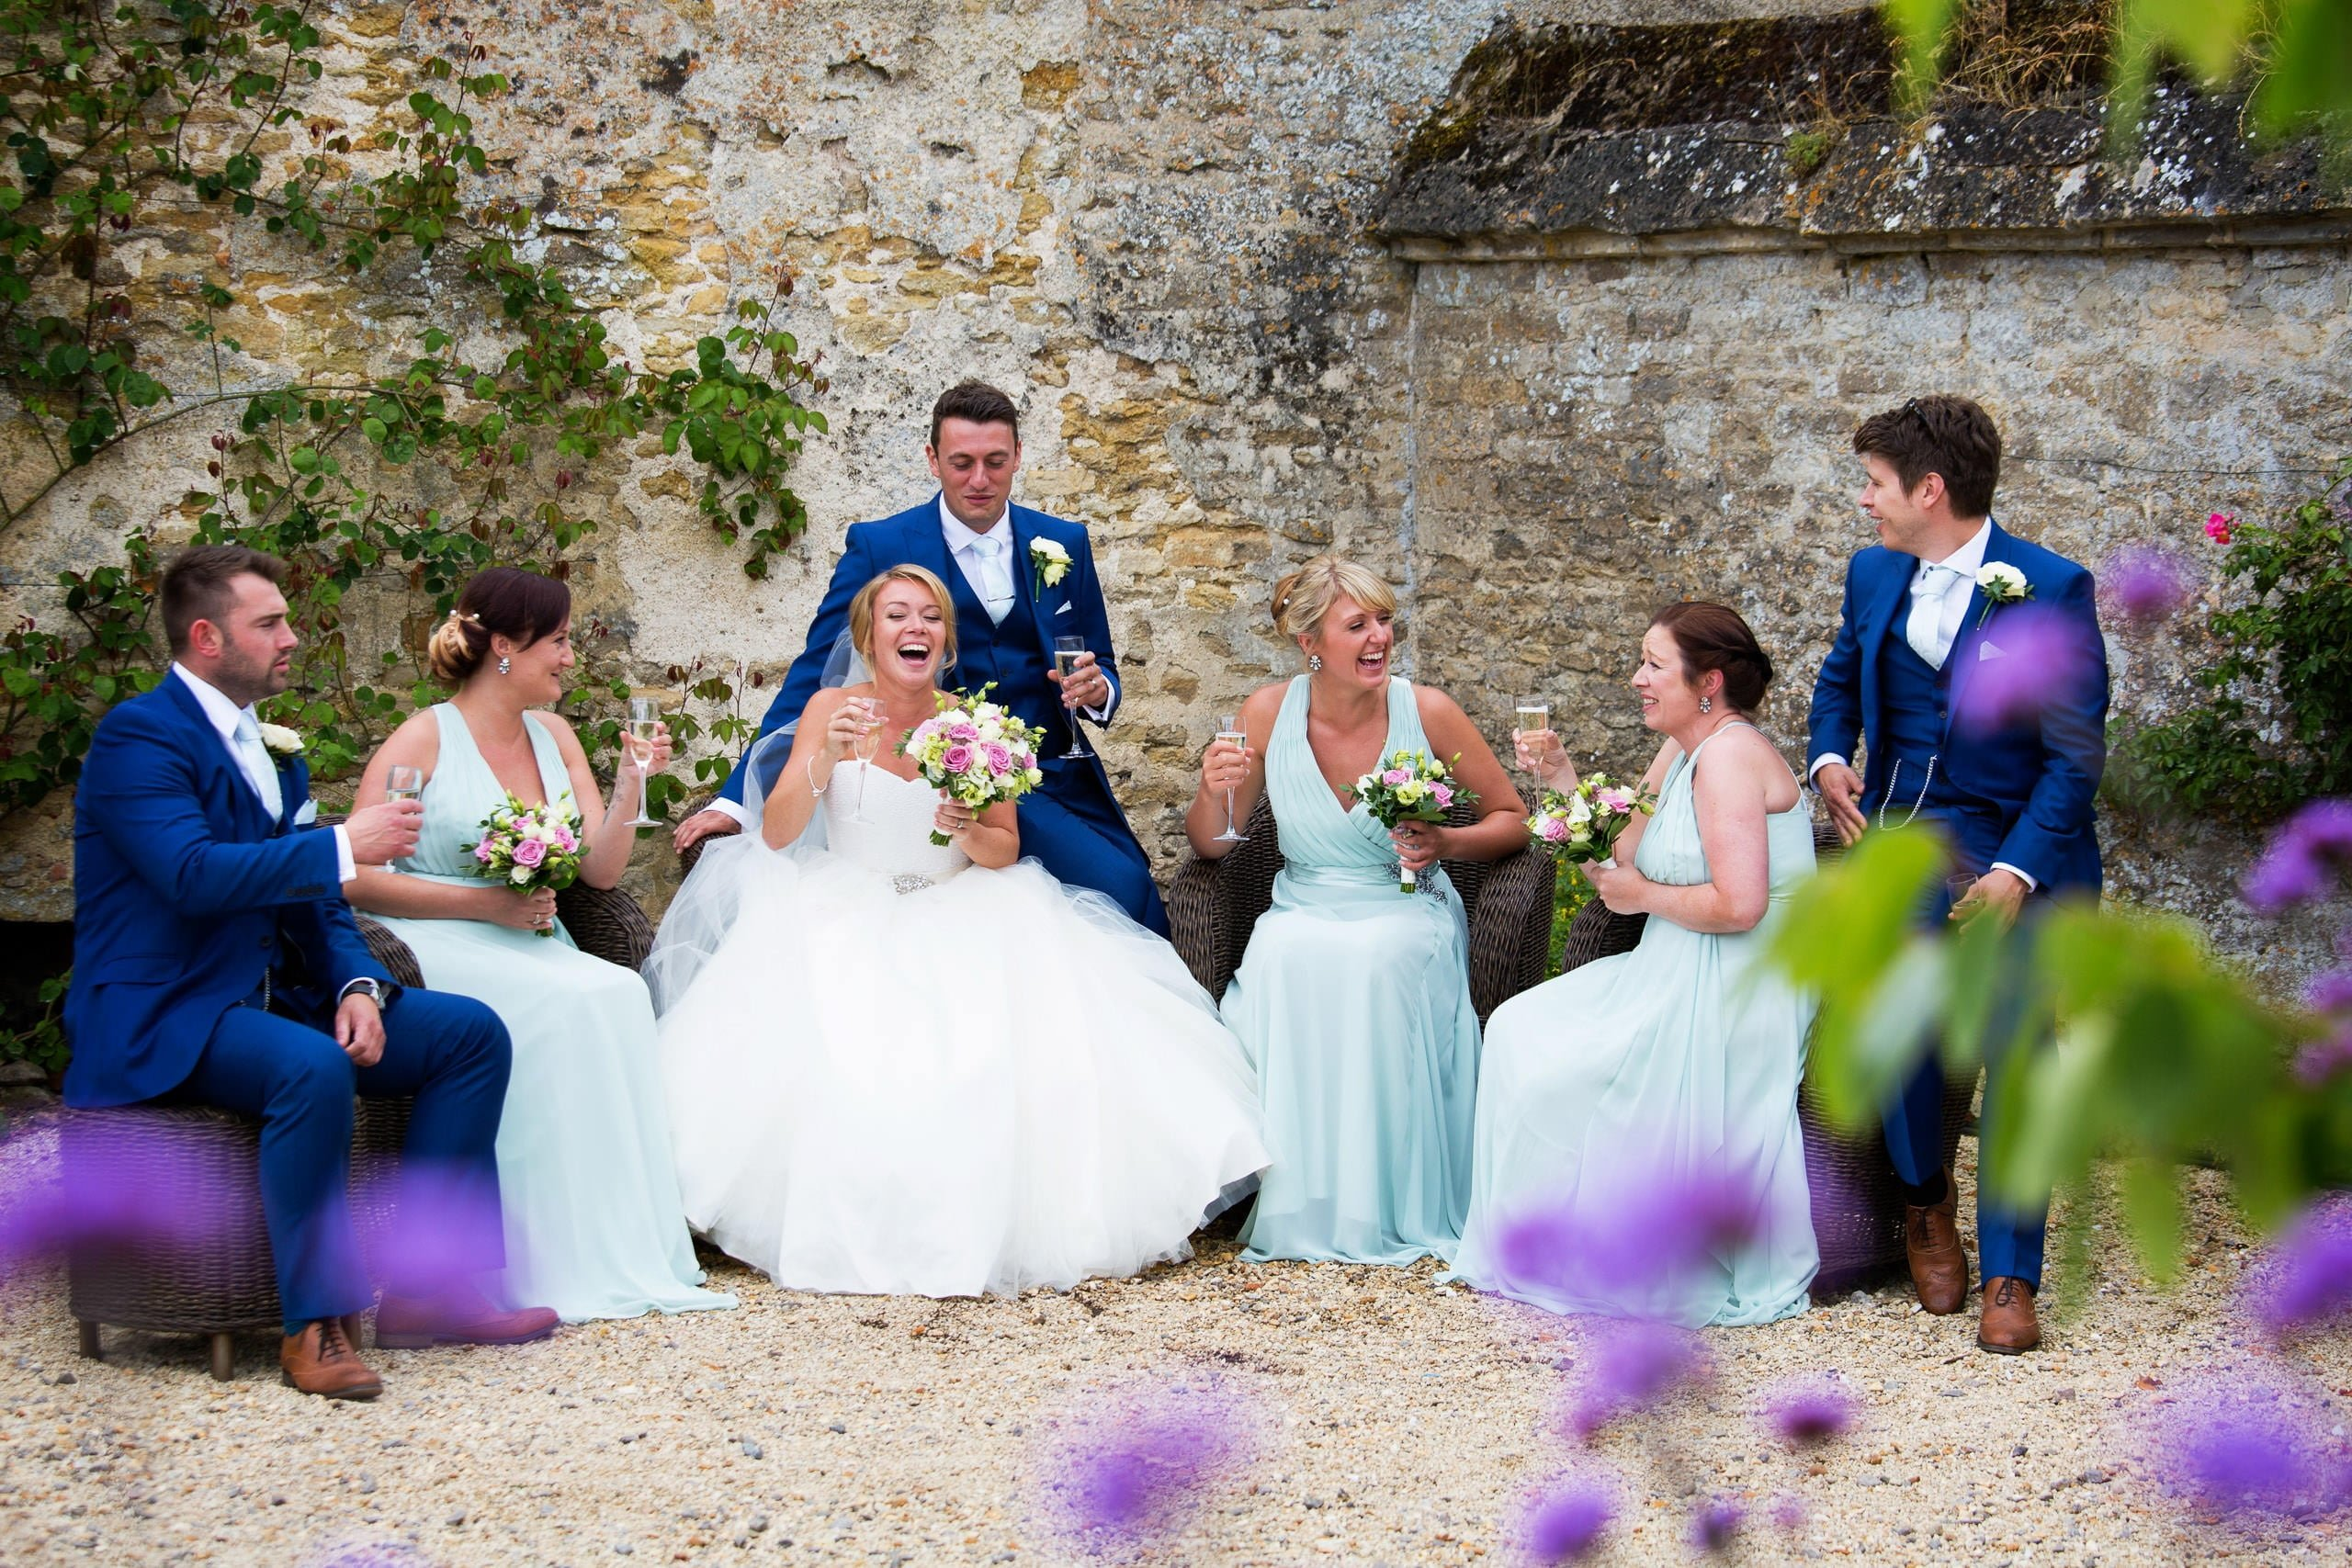 Wedding Photographers in wiltshire Making wiltshire Photography Proud